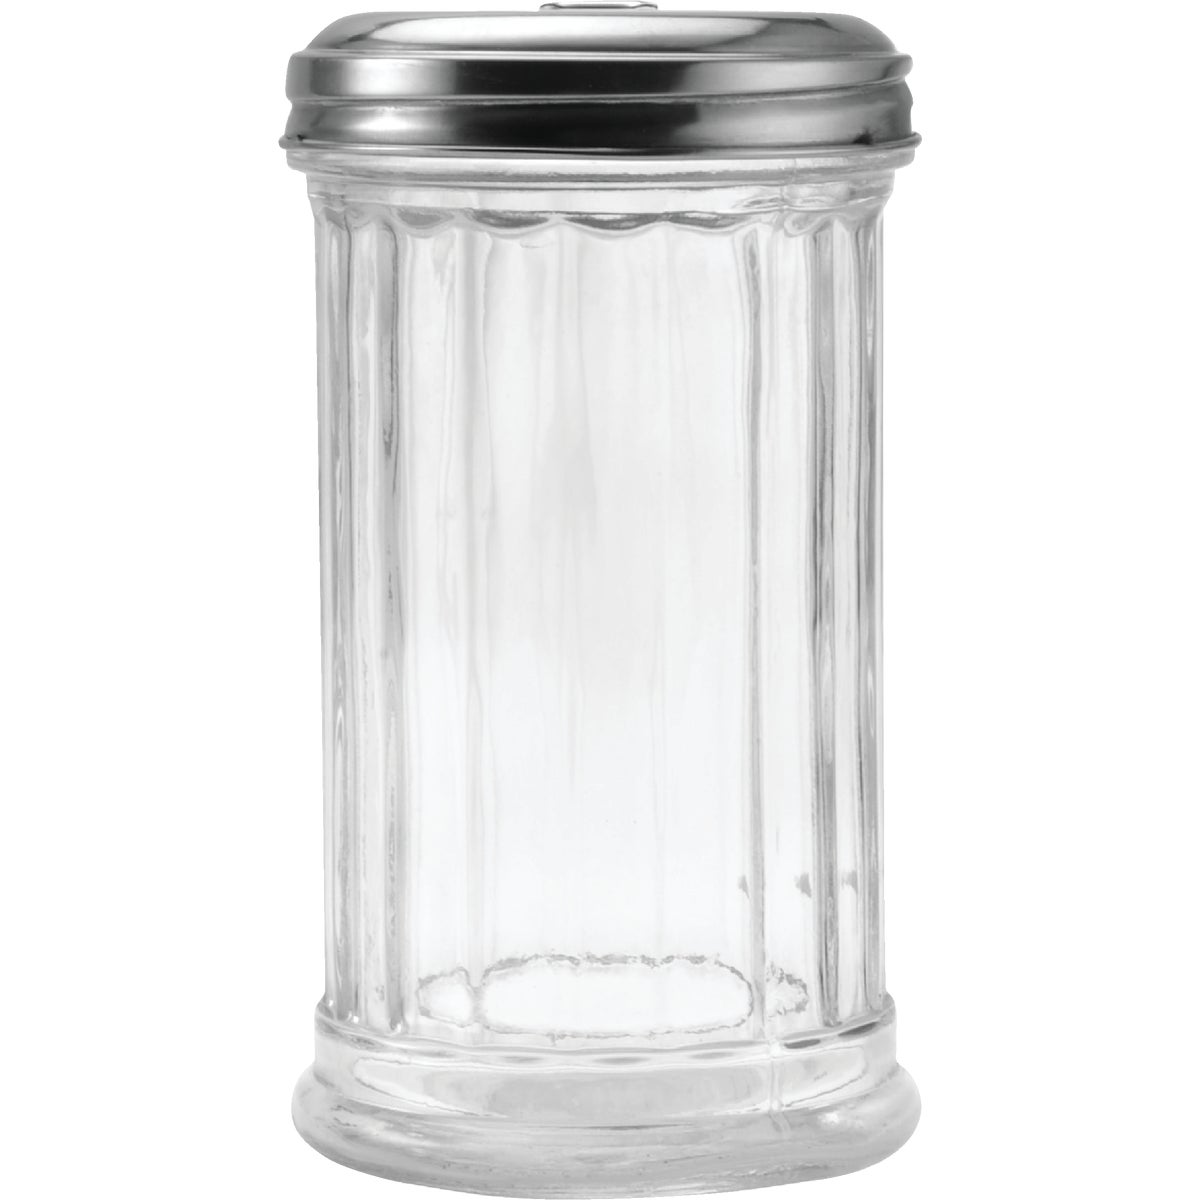 12OZ SUGAR DISPENSER - 5078603 by Lifetime Hoan